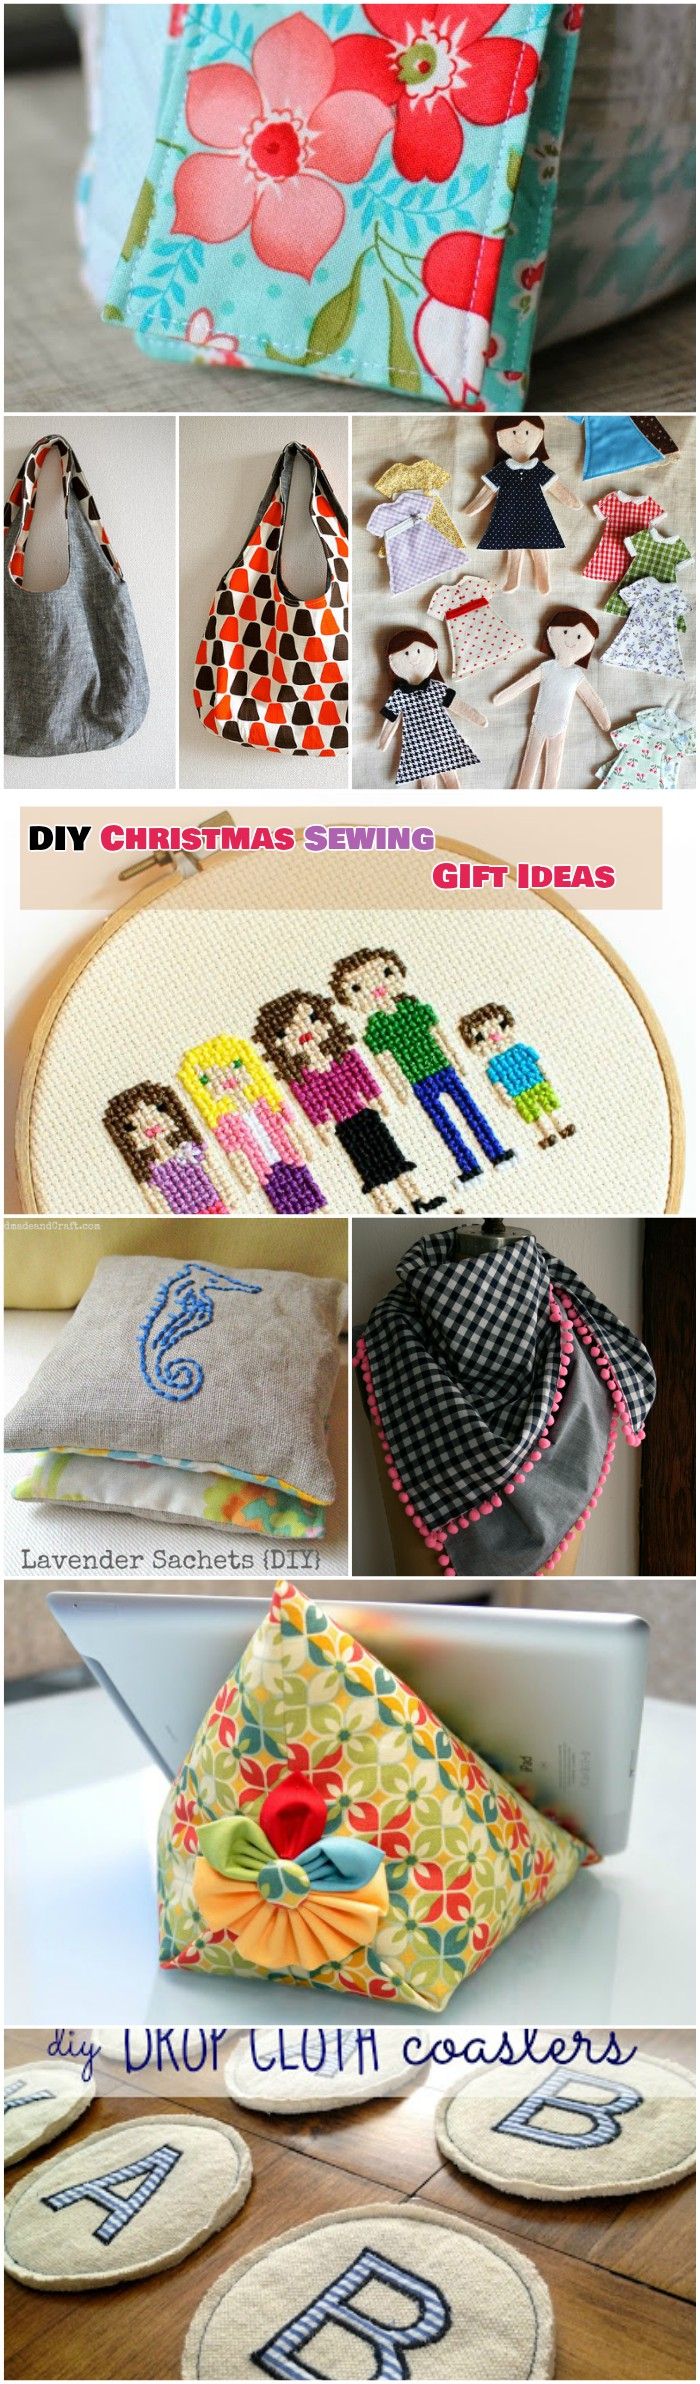 #44 Inexpensive Christmas Gifts: DIY Gift Ideas and ...